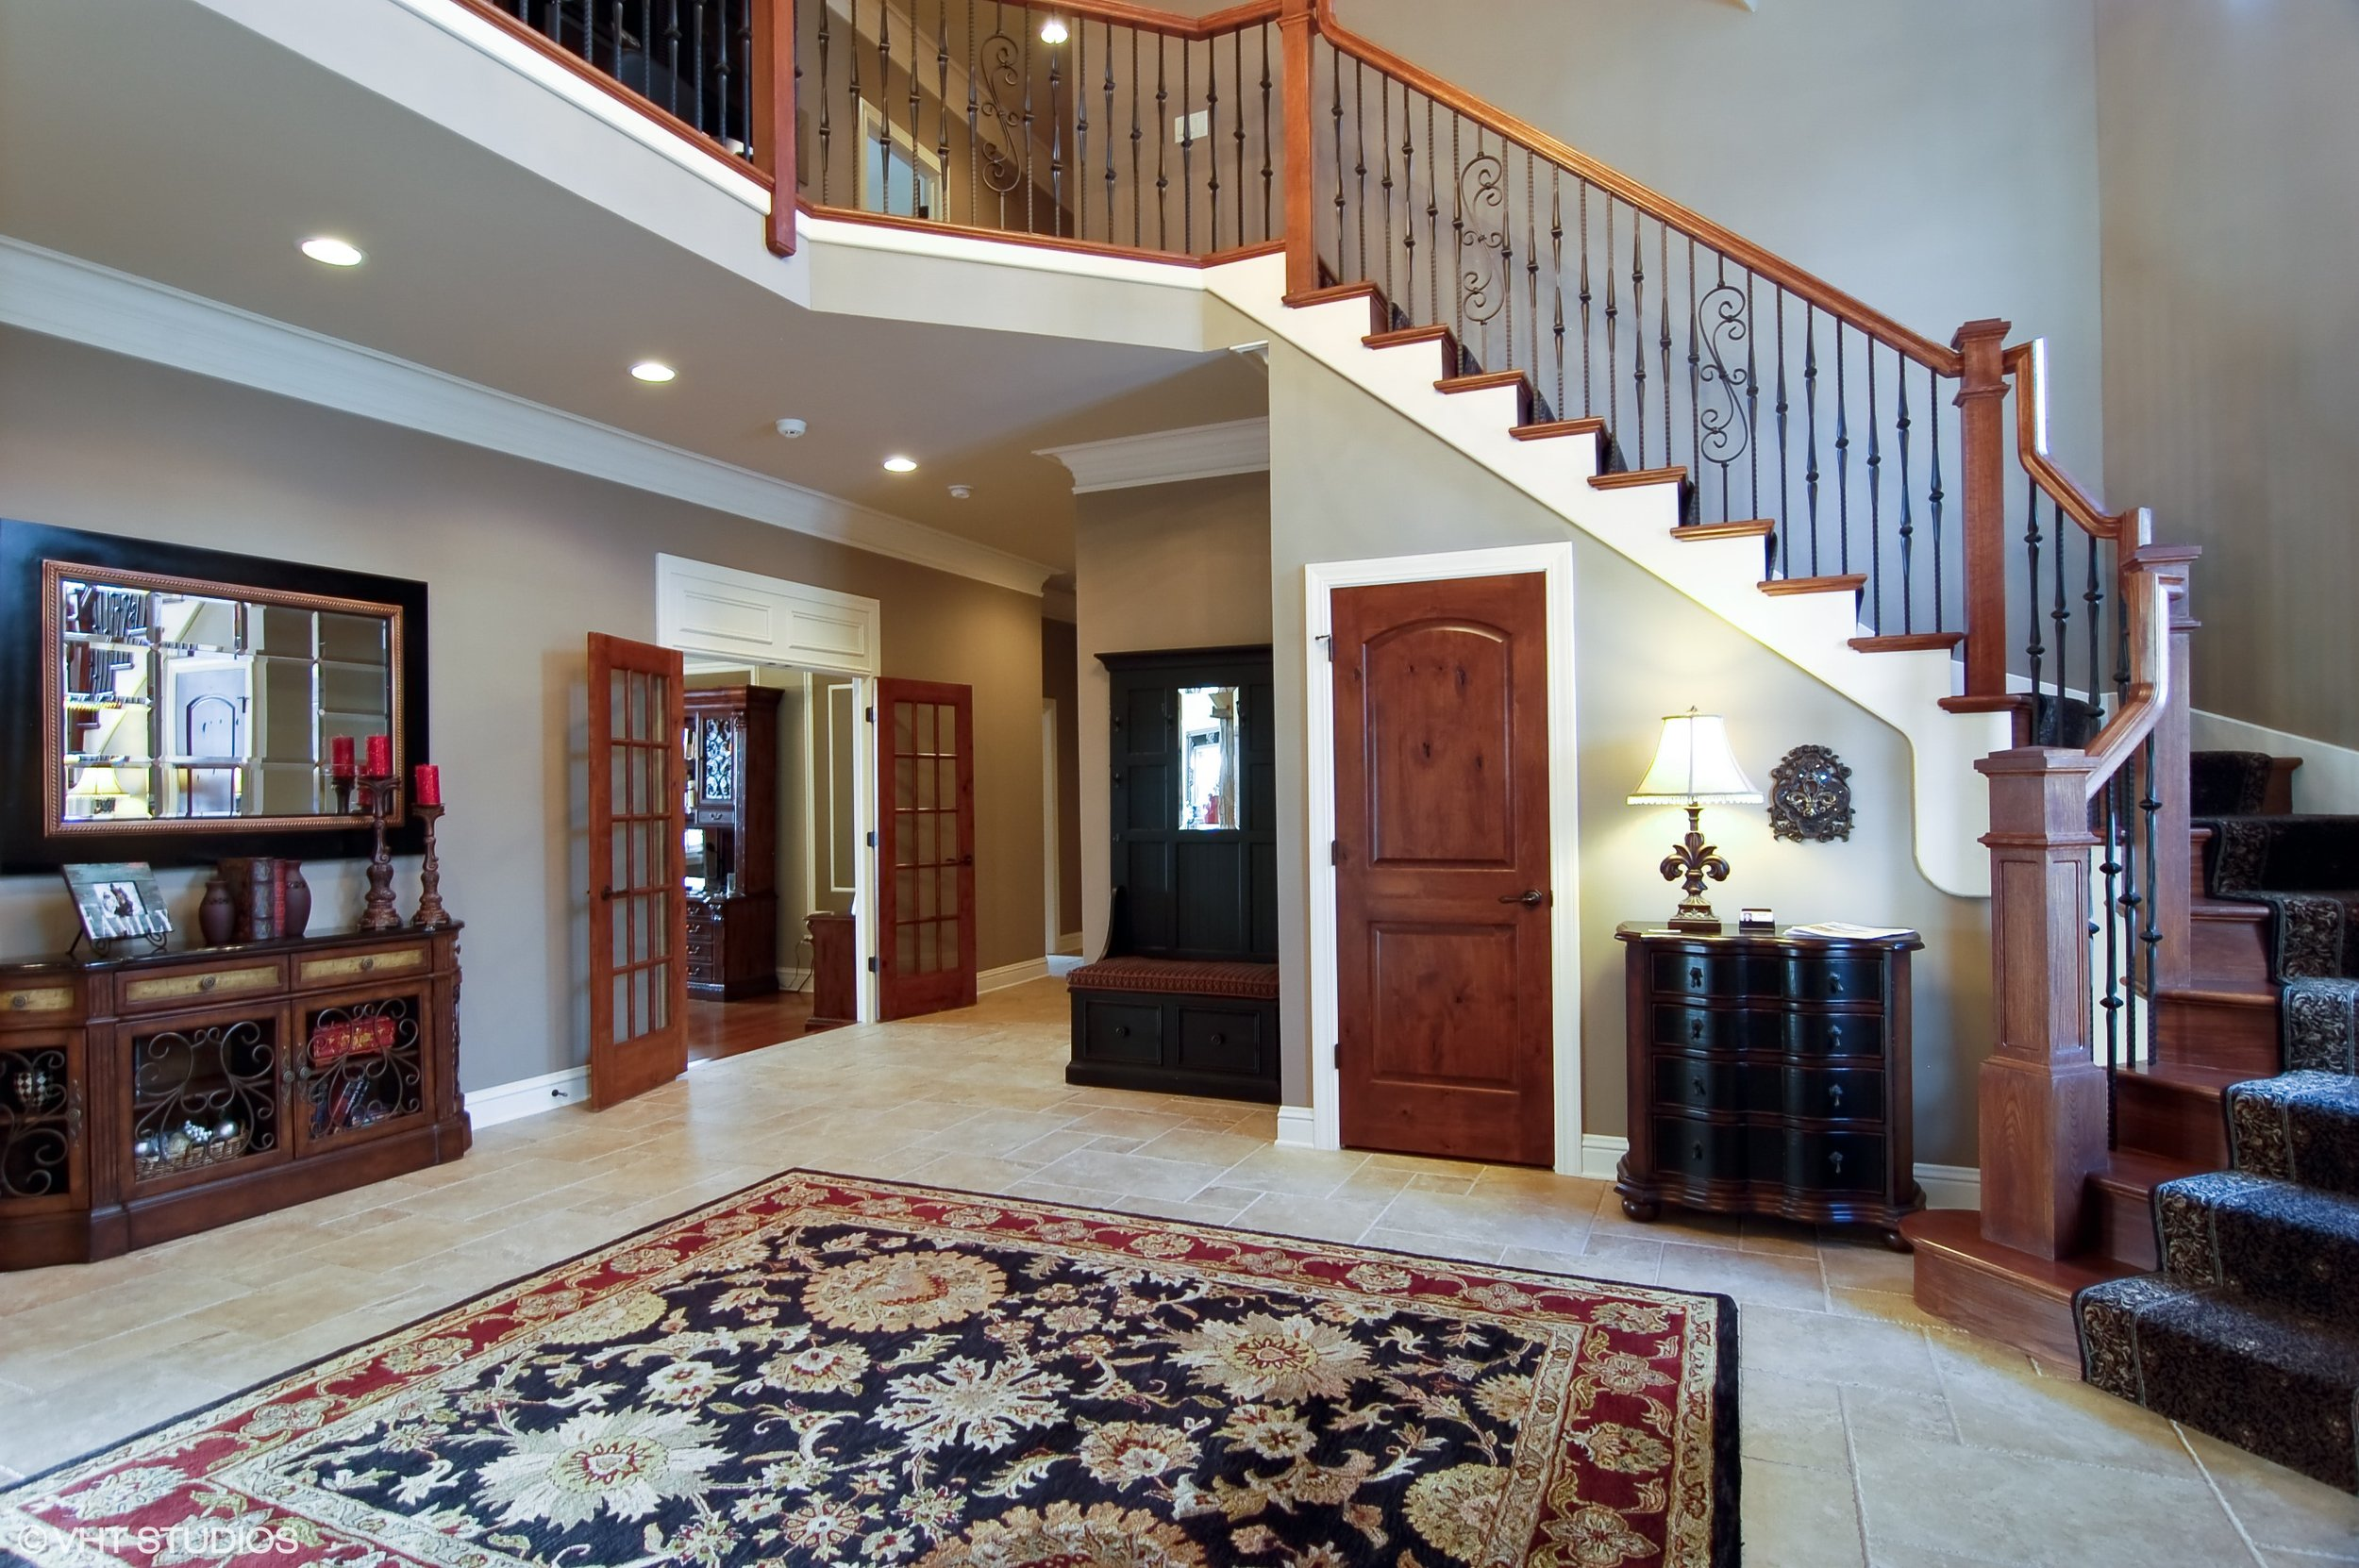 Northern Illinois Foyer Remodeling Specialist With New Stairs, Remodeling Current Stairs and Custom New Handrails & Newels. Square Balusters. White Treads.